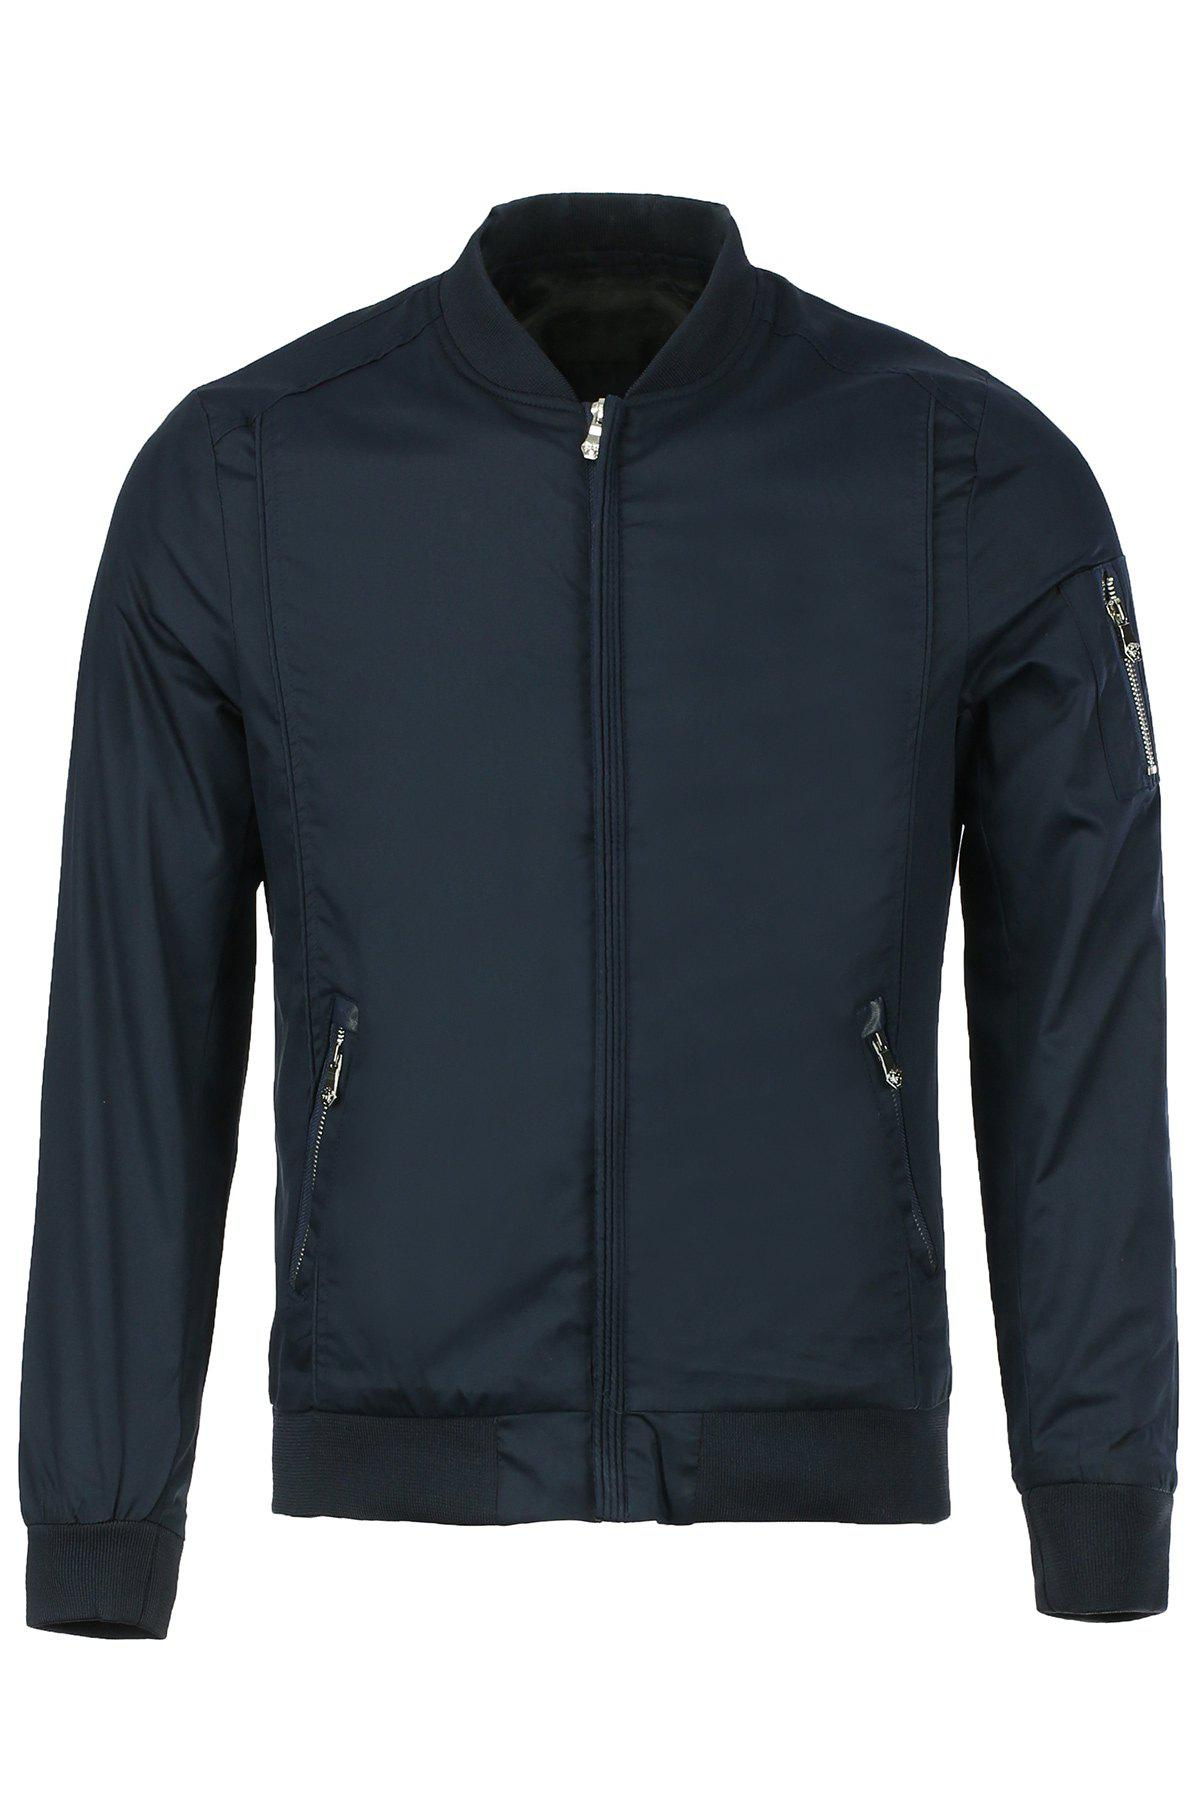 Multi-Zipper Solid Color Stand Collar Long Sleeves Men's Slimming Jacket - BLUE L